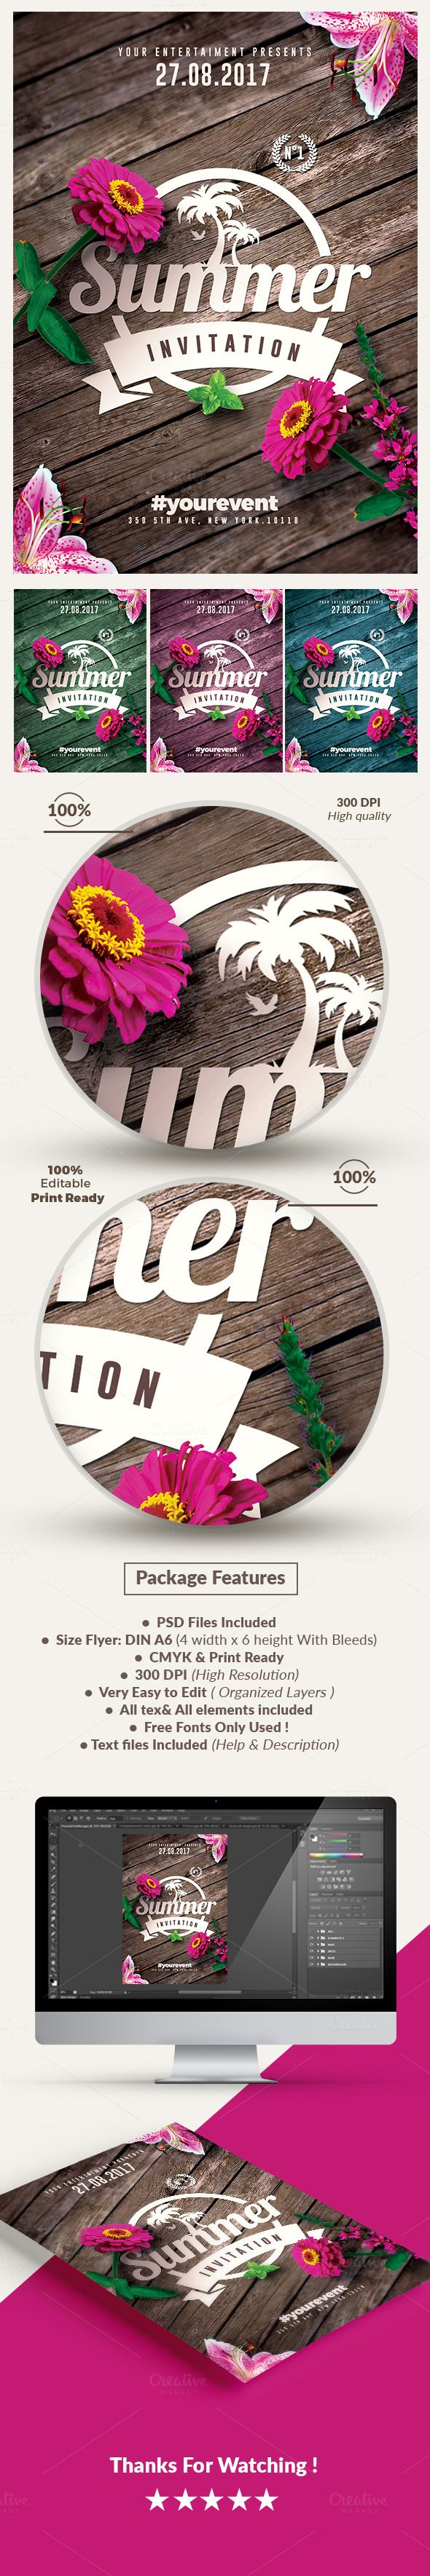 Amazing design ! Summer Invitations | Flyer Templates by @romecreation on @CreativeMarket #flyers #templates #summer #invitations #creative #graphics #posters #advertising #spring #party #flowers #flowerpower #wooden #wood #minimal #minimalist #invitation #romecreation #flyer #design